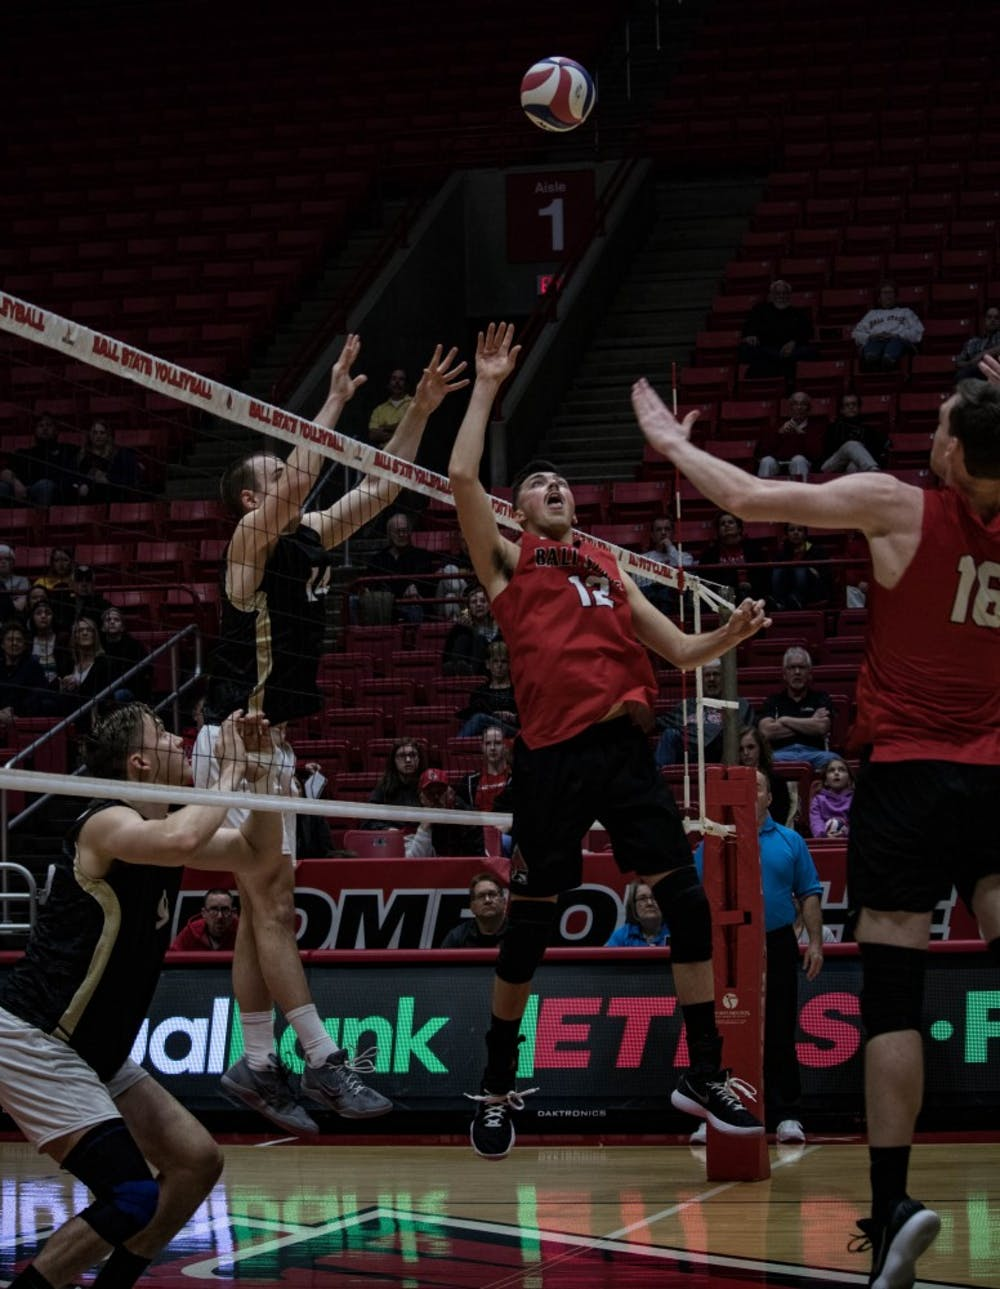 No. 13 Ball State Men's Volleyball struggles with serving, passing against No. 15 Purdue Fort Wayne